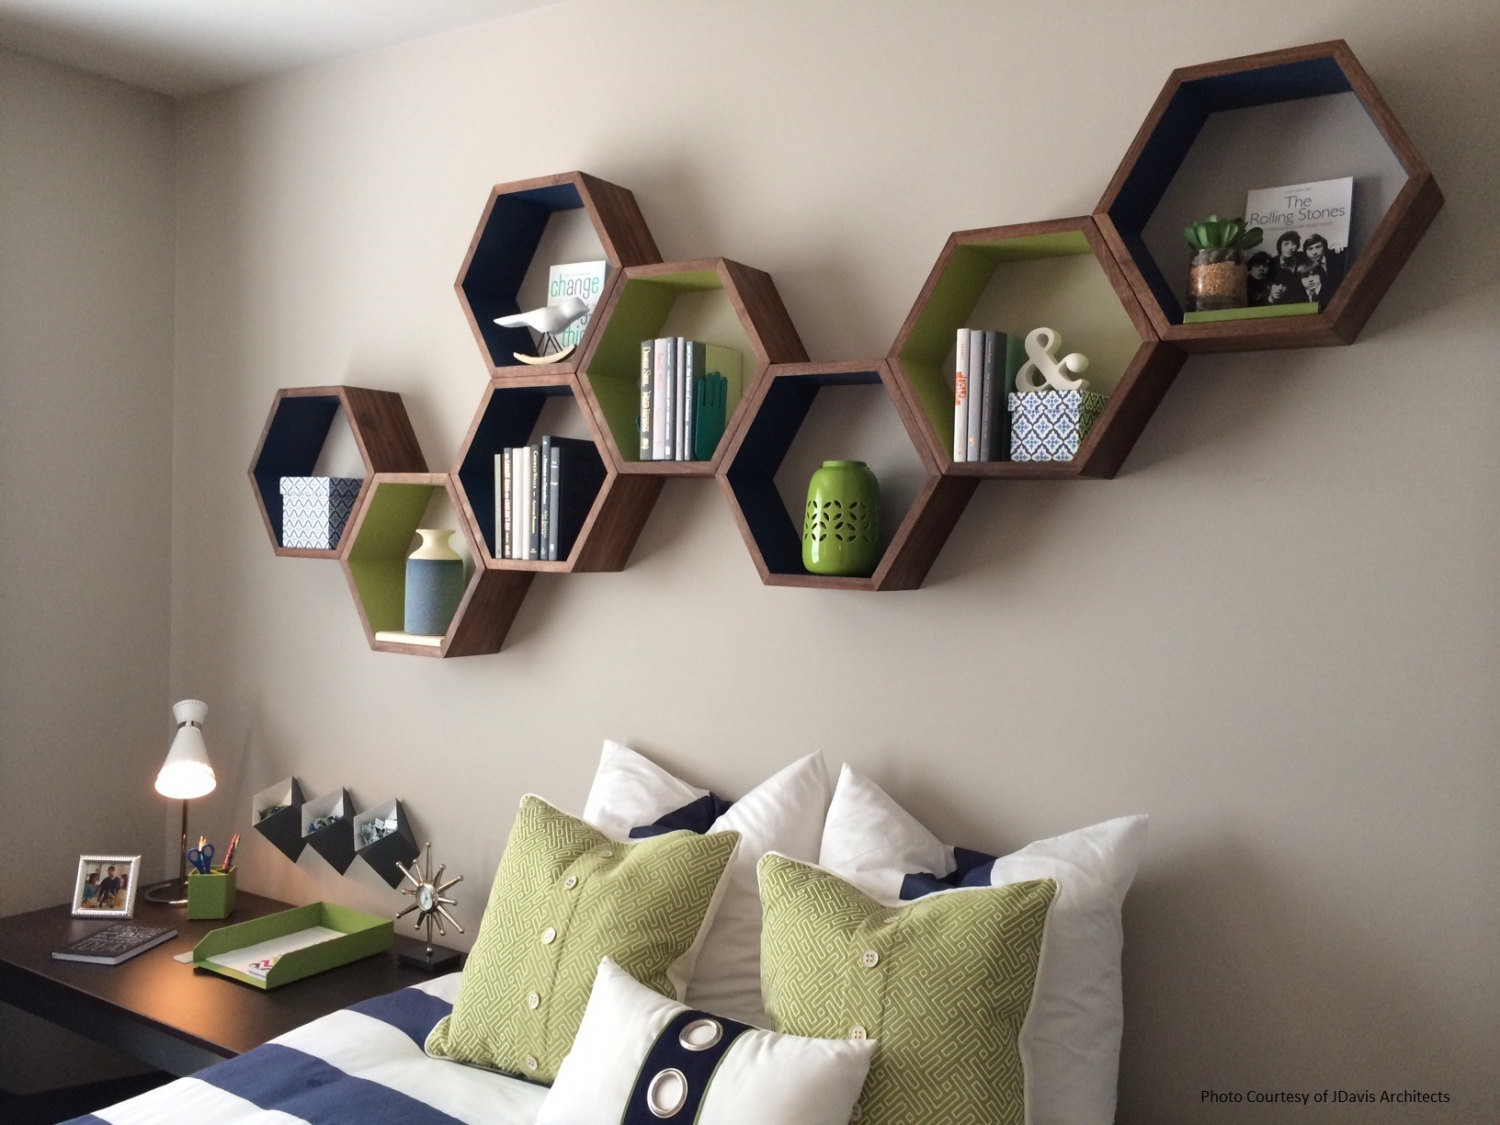 20 Creative Ways To Decorate Your Home With Unexpected Handmade Wall     20 Creative Ways To Decorate Your Home With Unexpected Handmade Wall Decor